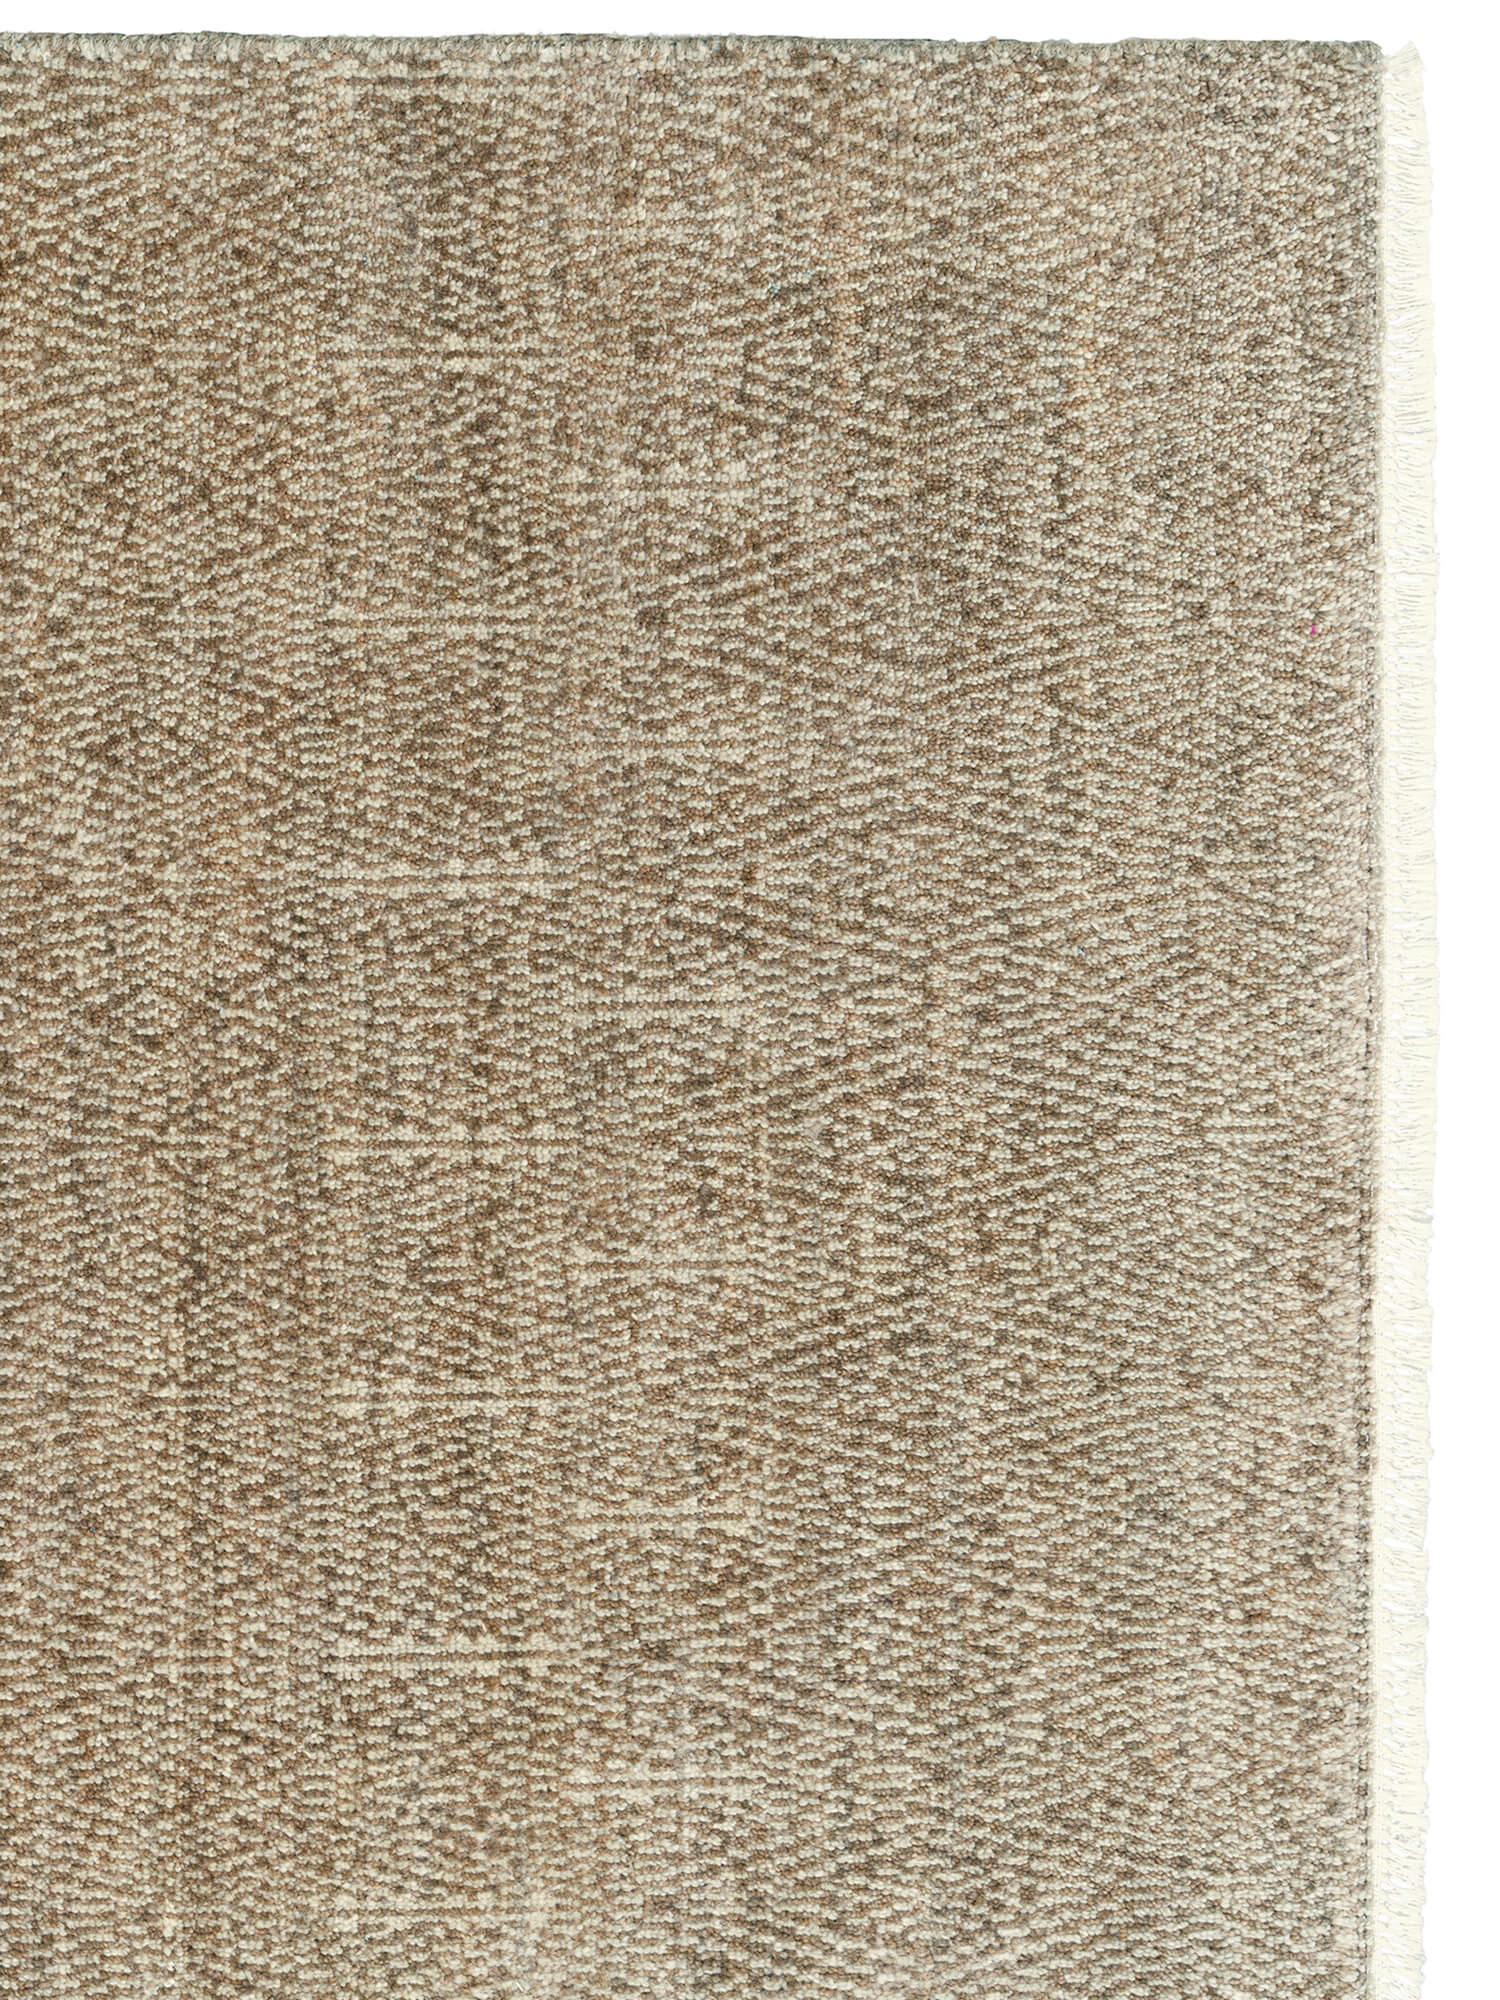 est living crafting a legacy Armadillo Rugs HeirloomCollection Paragon Sepia CornerShot 1